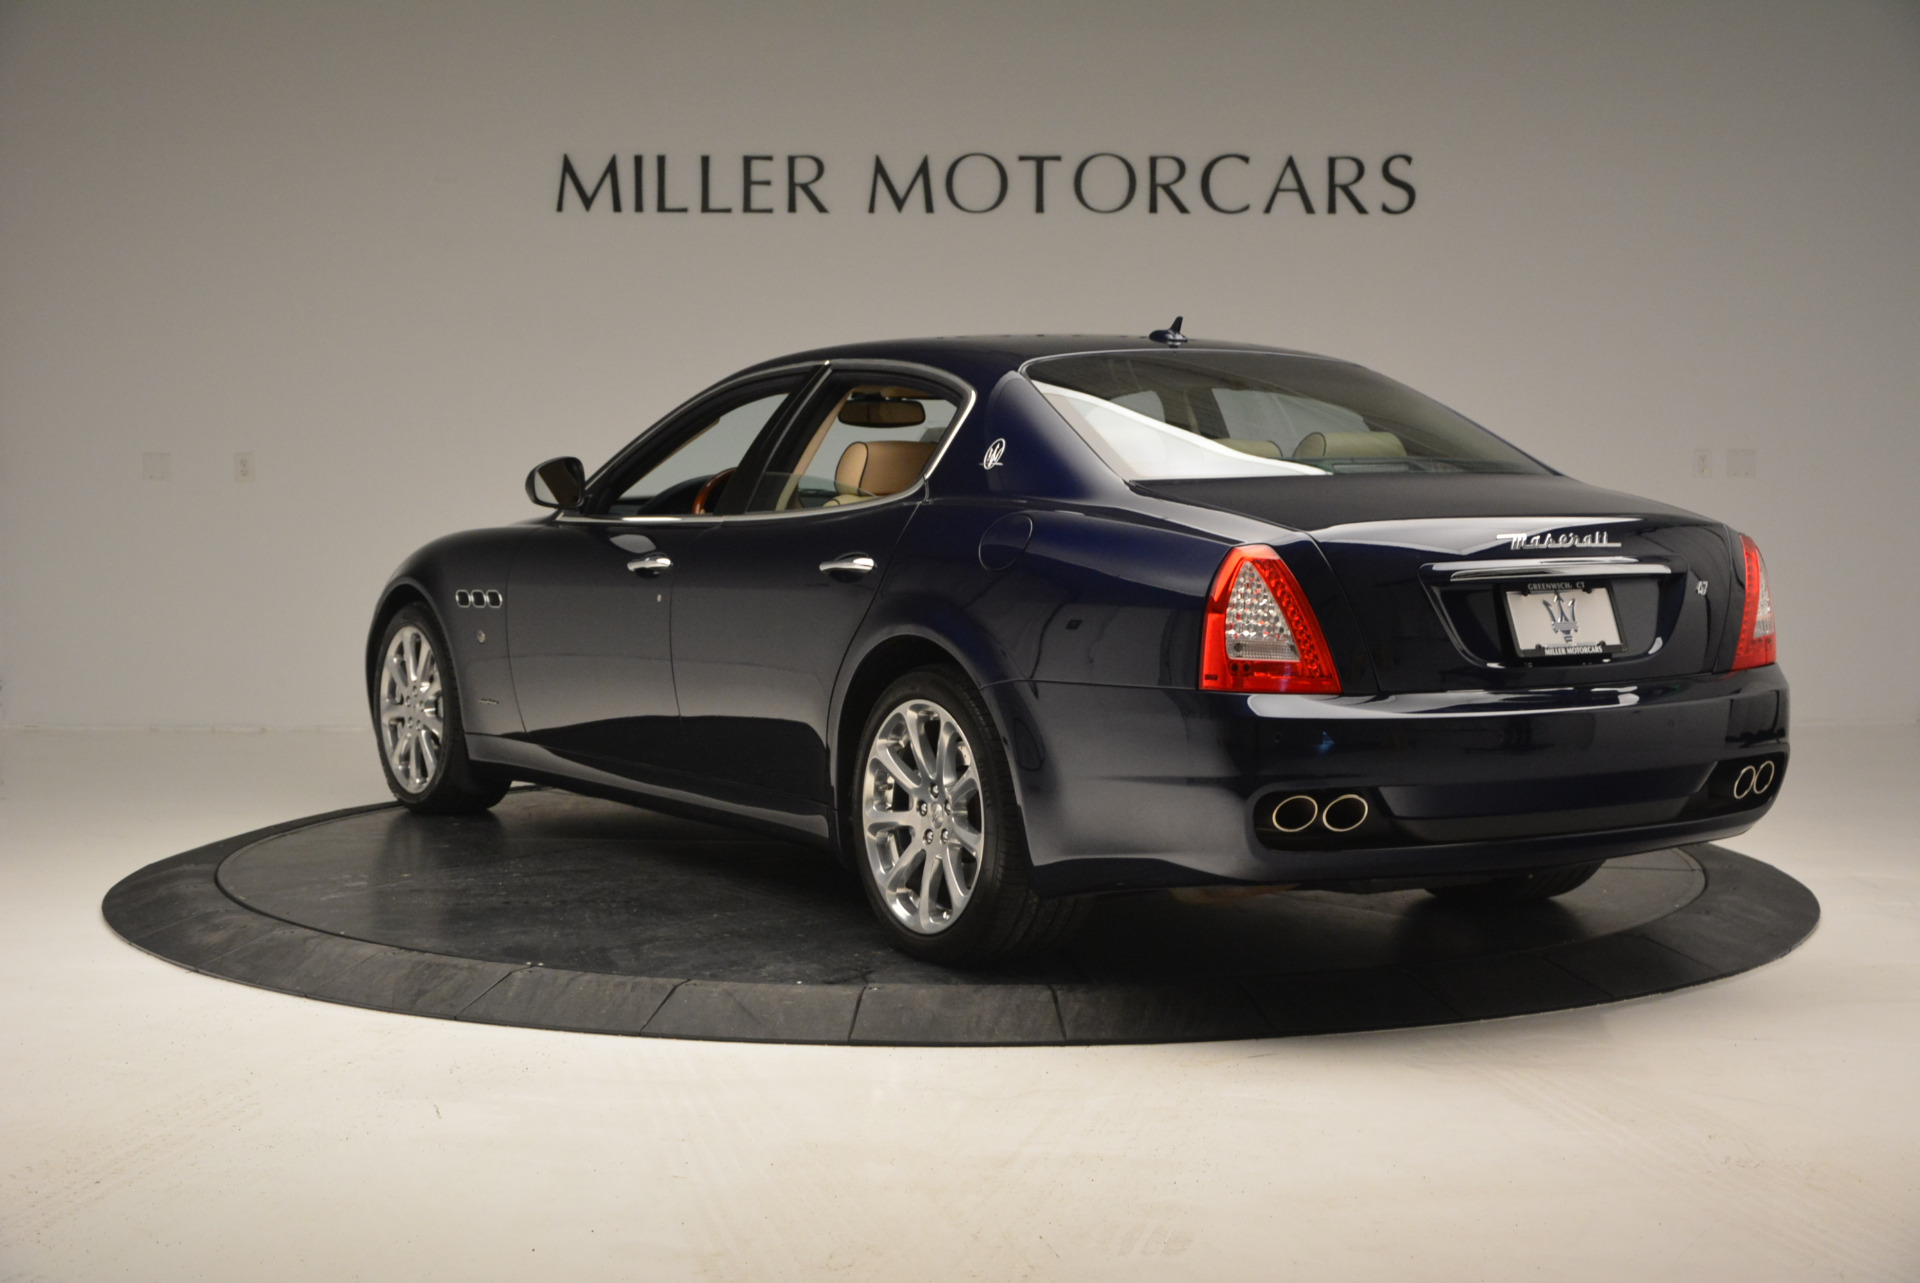 Used 2010 Maserati Quattroporte S For Sale In Greenwich, CT 795_p5